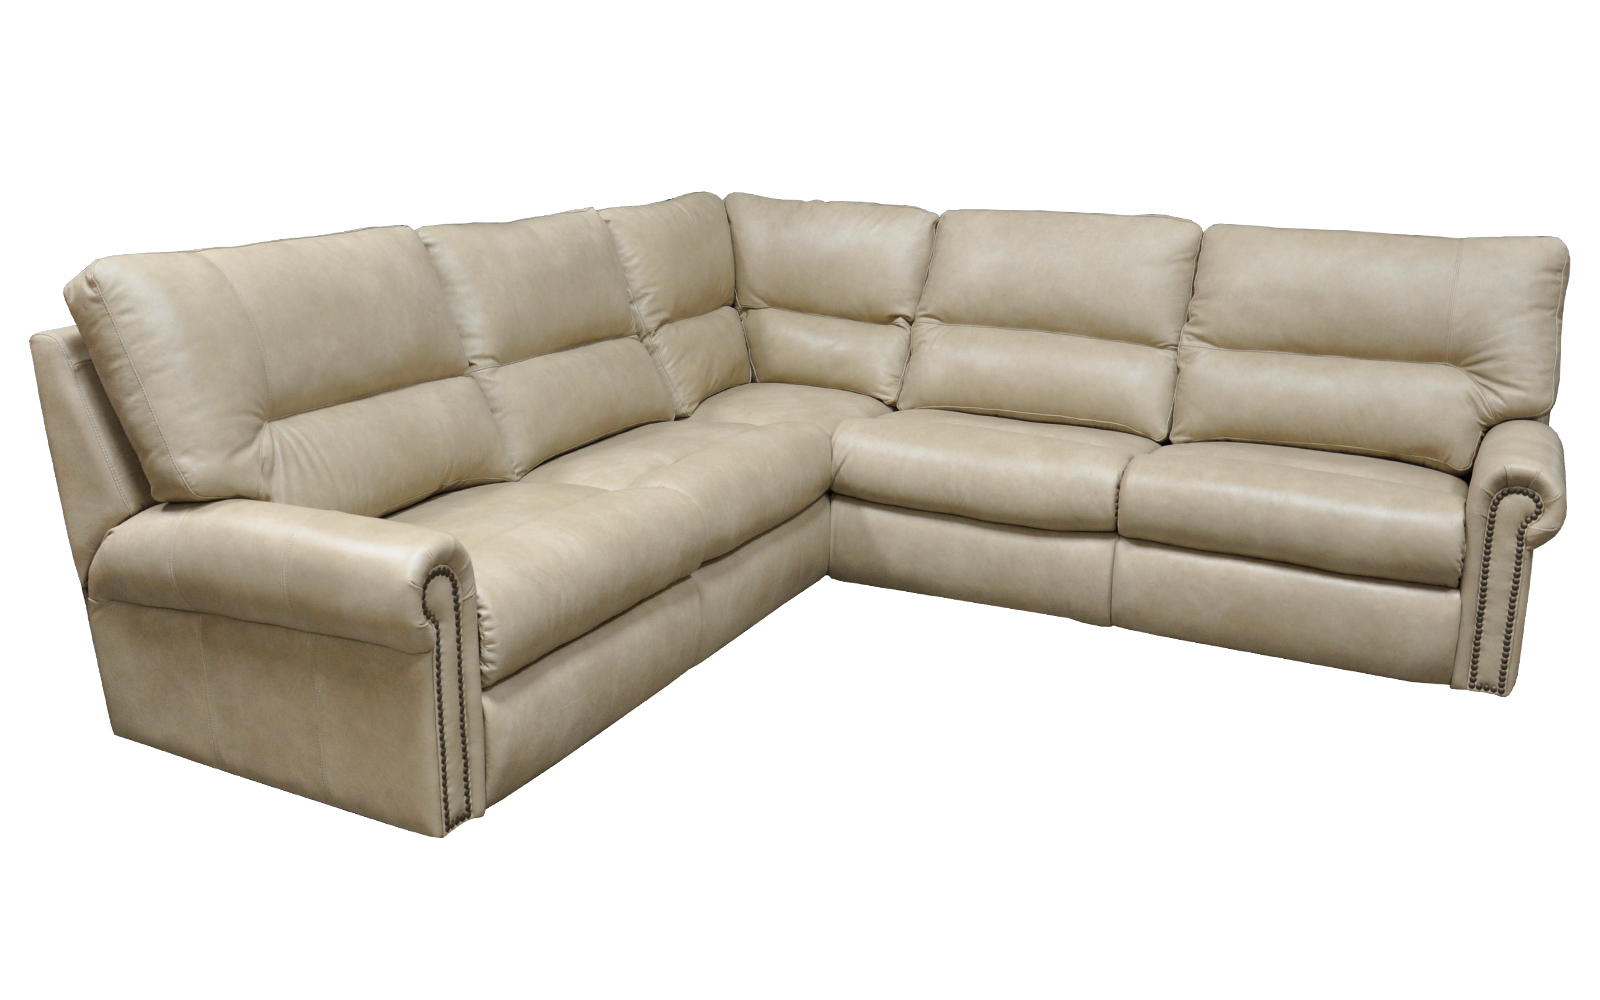 Wynwood sofa available · montclair recliner available · montclair re mo v1 hr 1